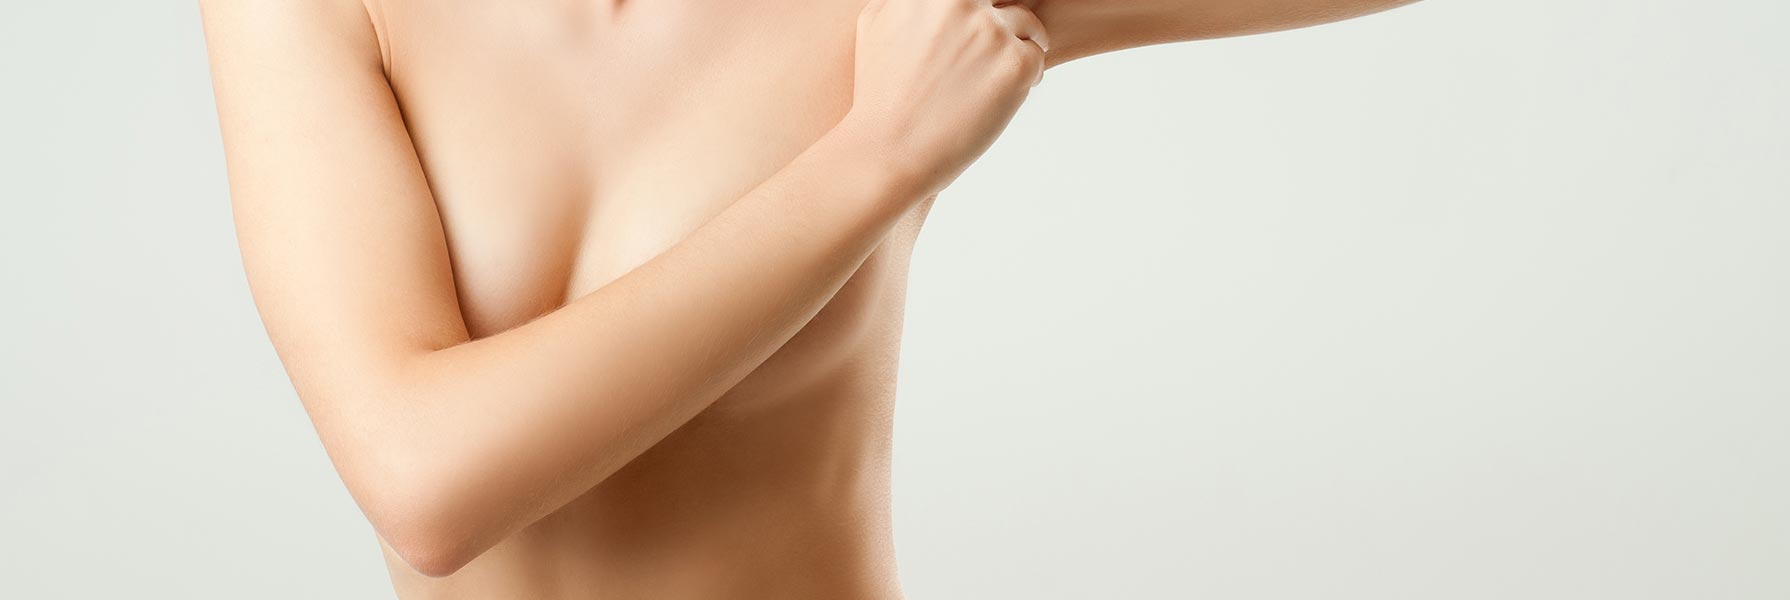 tuberous breasts at Form & Face clinic in Sydney